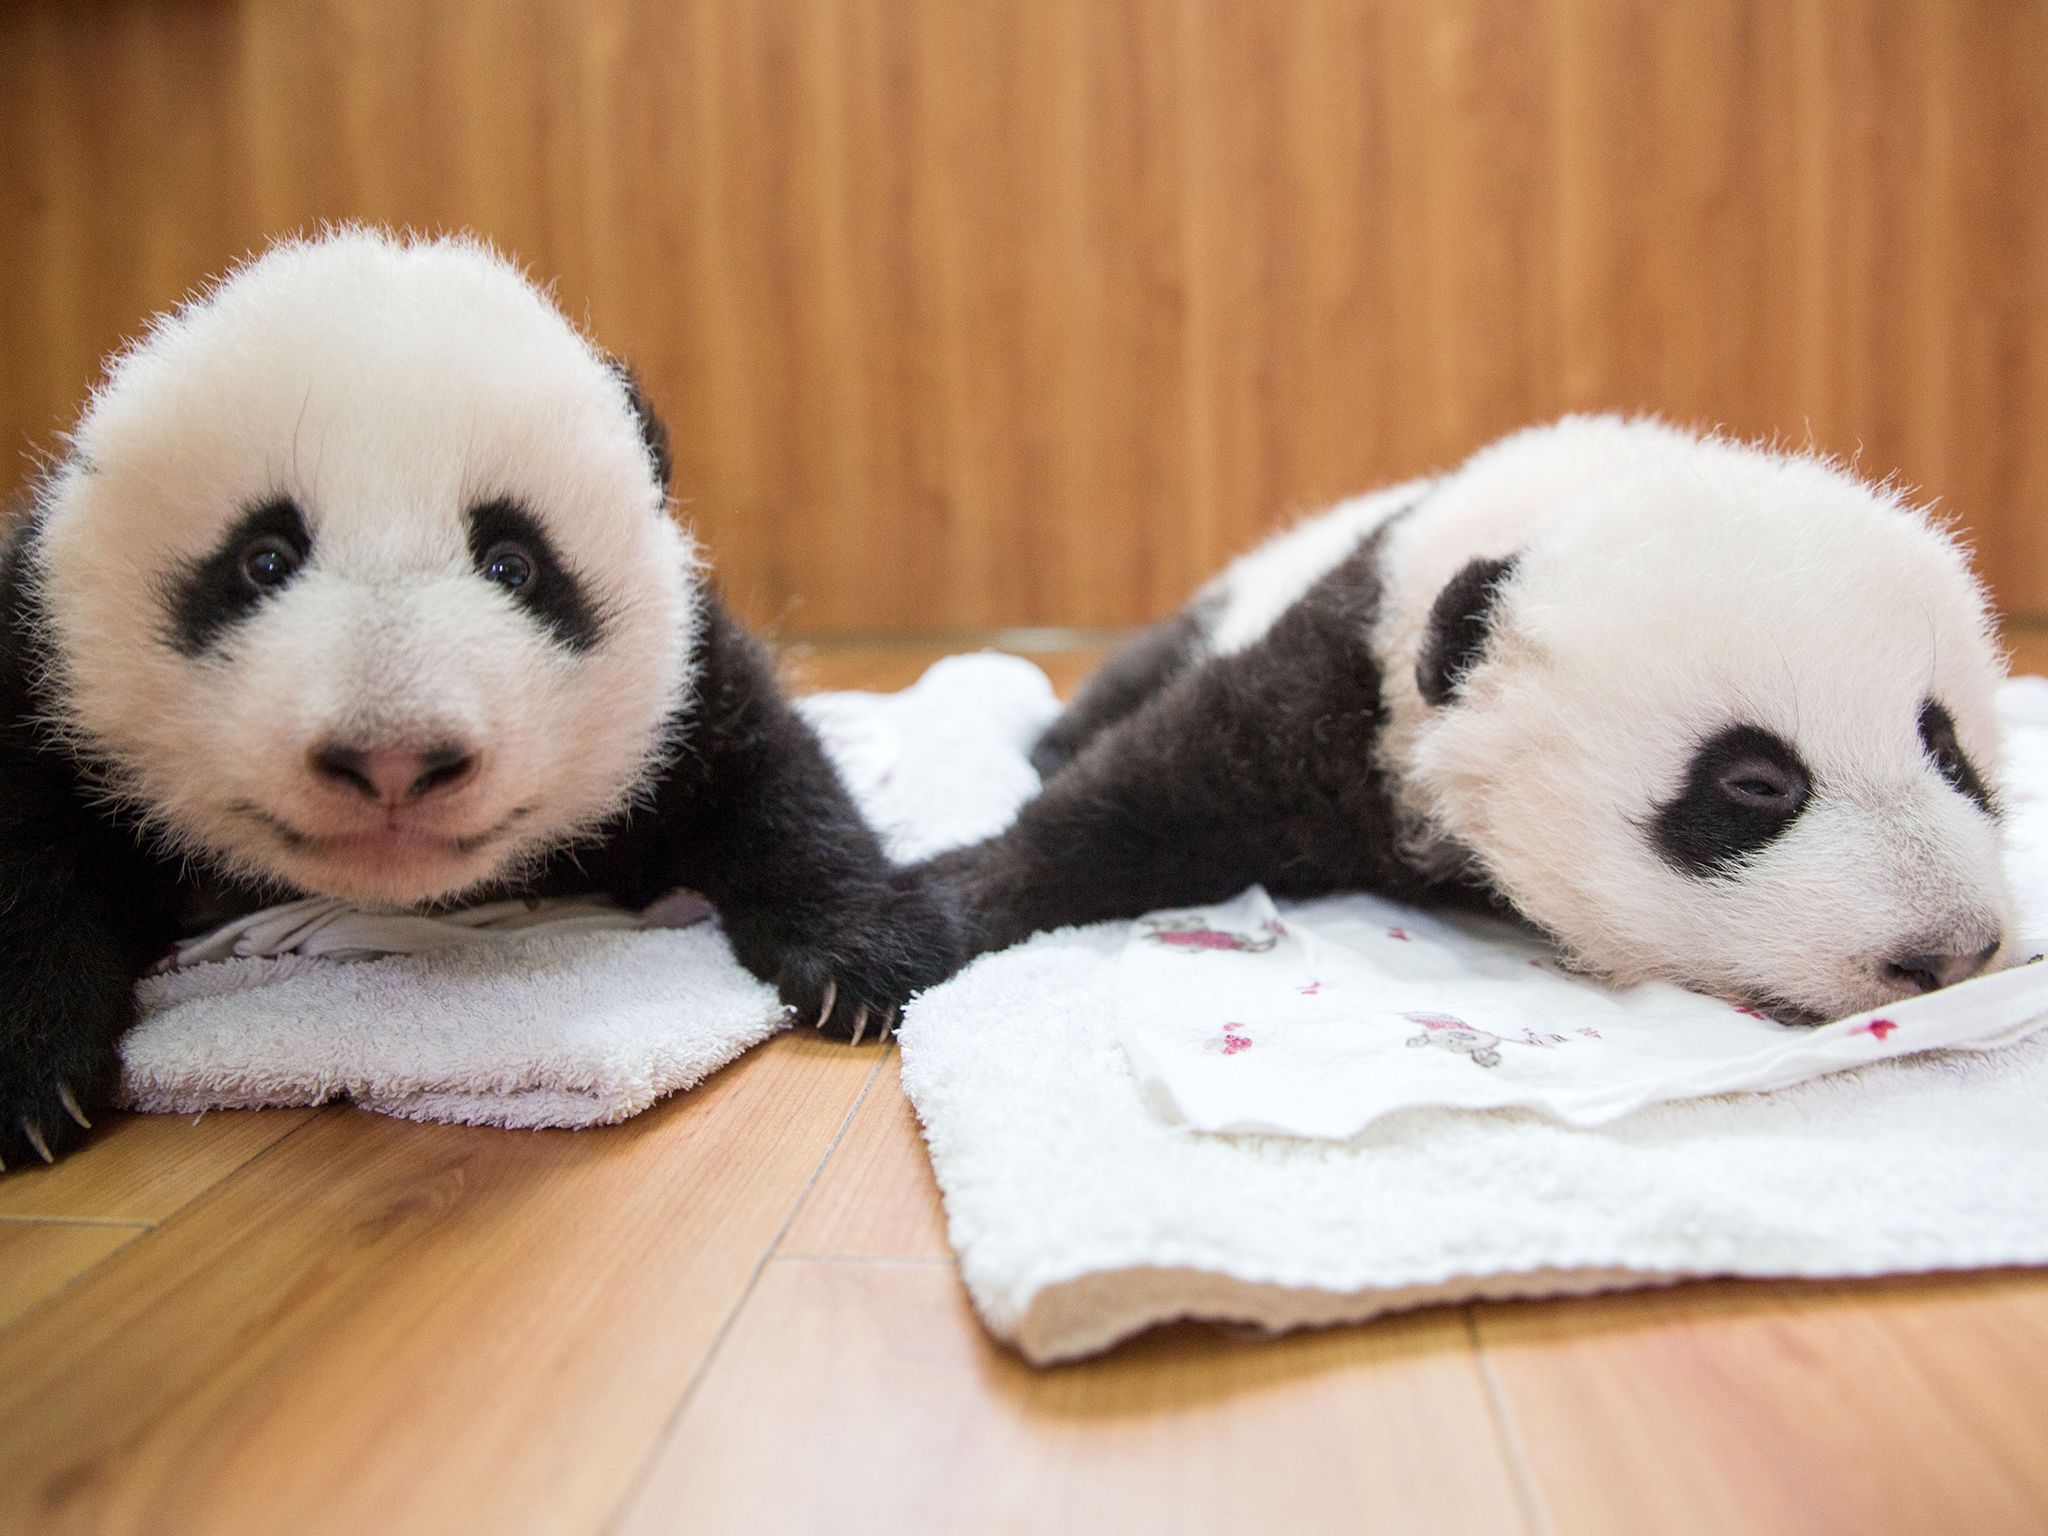 Baby Pandas at Wolong Panda Reserve. This image is from Panda Babies. [Photo of the day - 七月 2016]